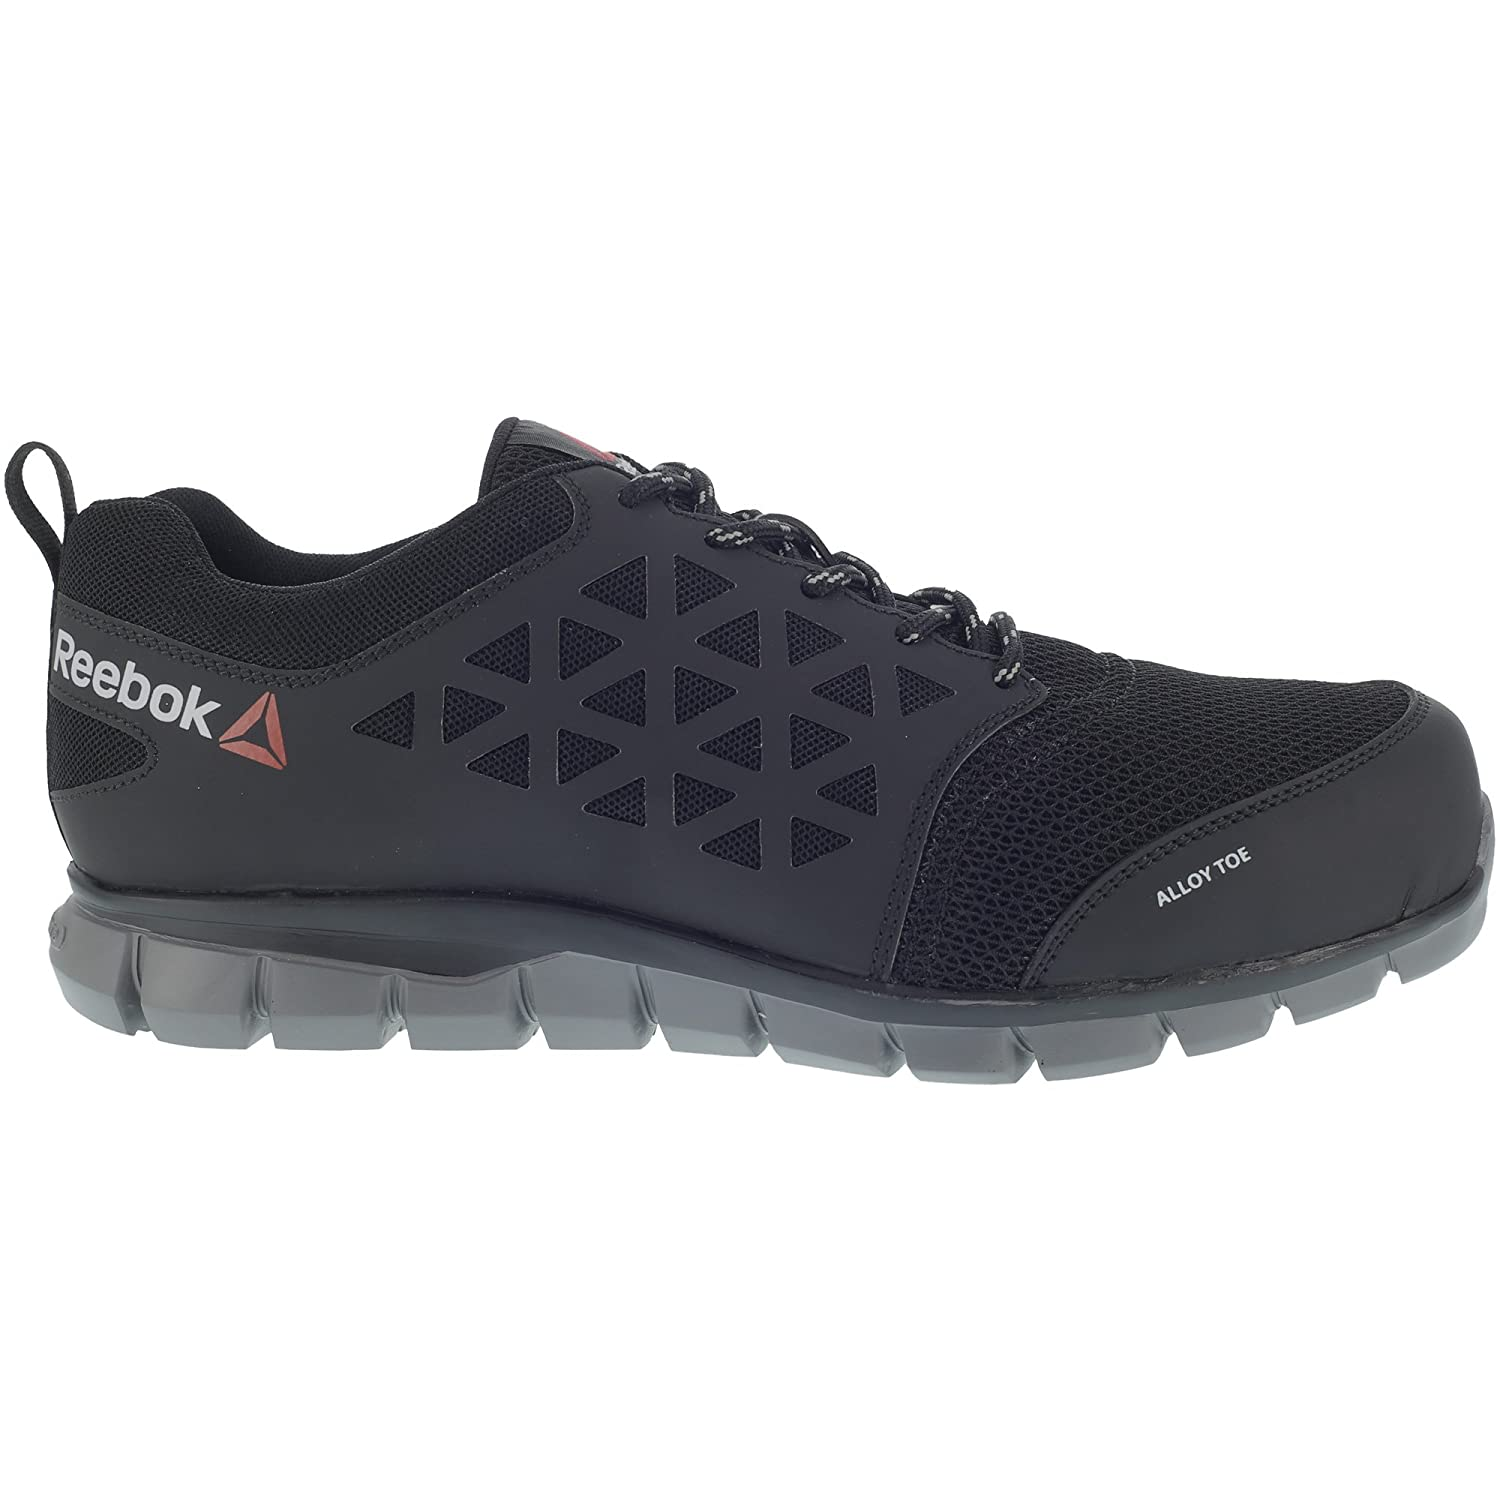 Reebok lavoro IB1031 S1P 42 Excel Light Athletic Safety Trainer shoe ... cb27fbe8d1a